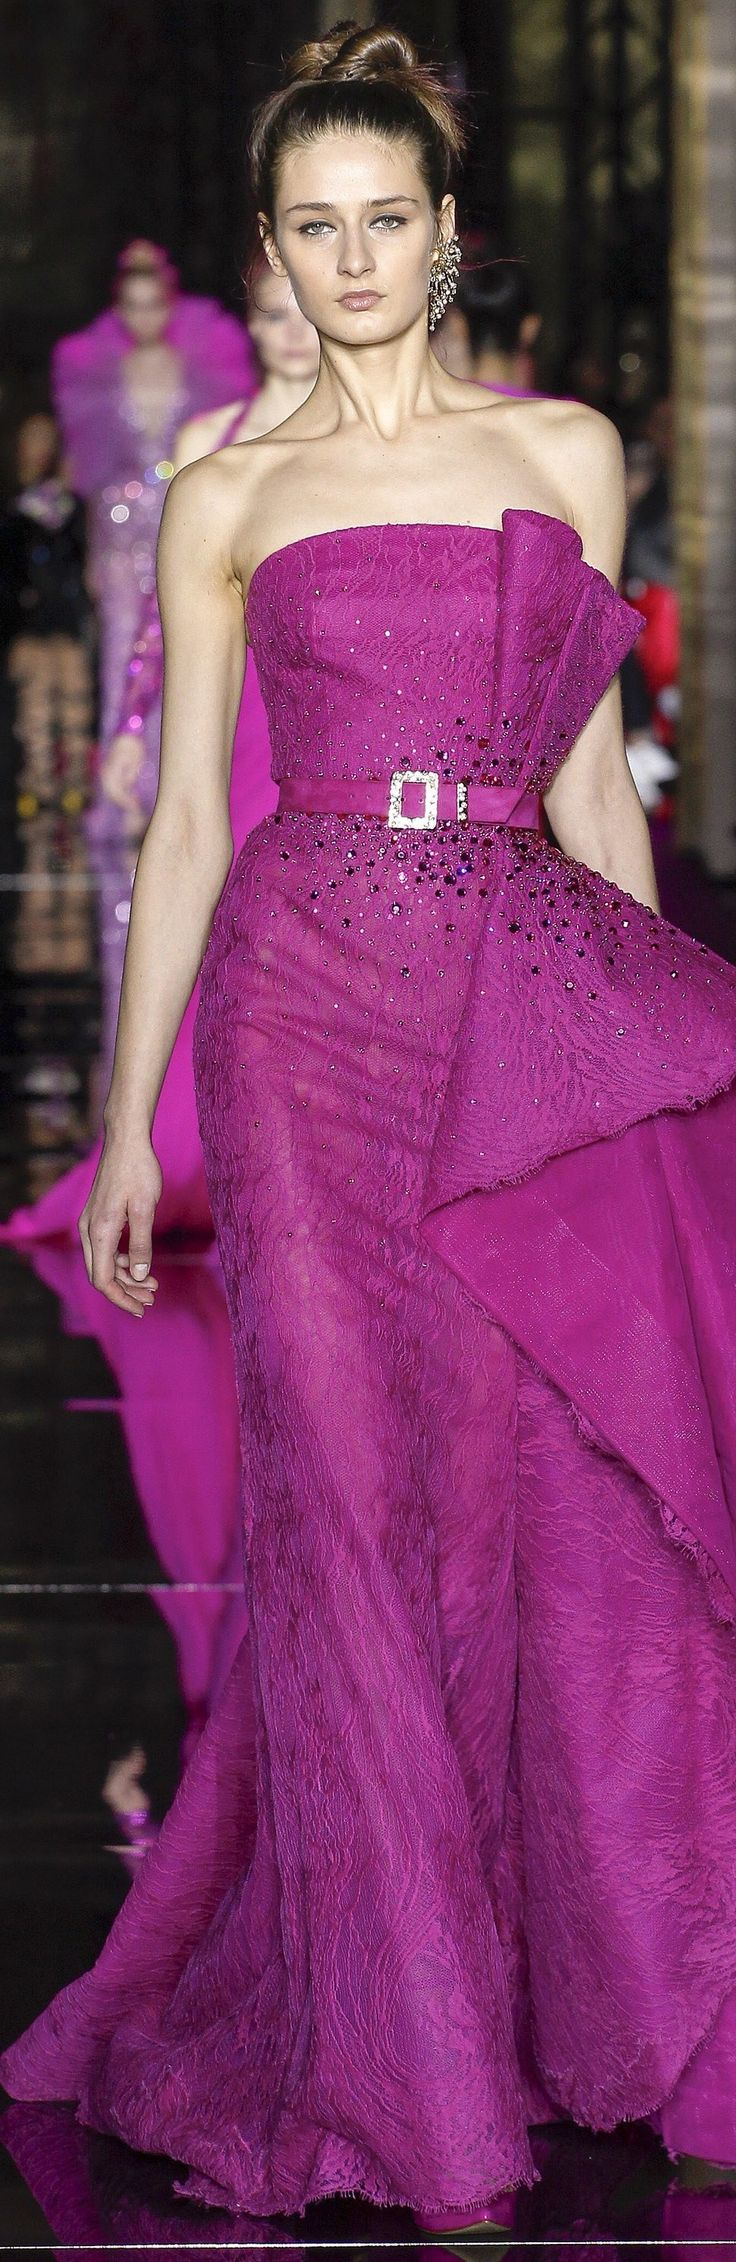 105 best Cherry/Fuchsia images on Pinterest | Party dresses, Prom ...